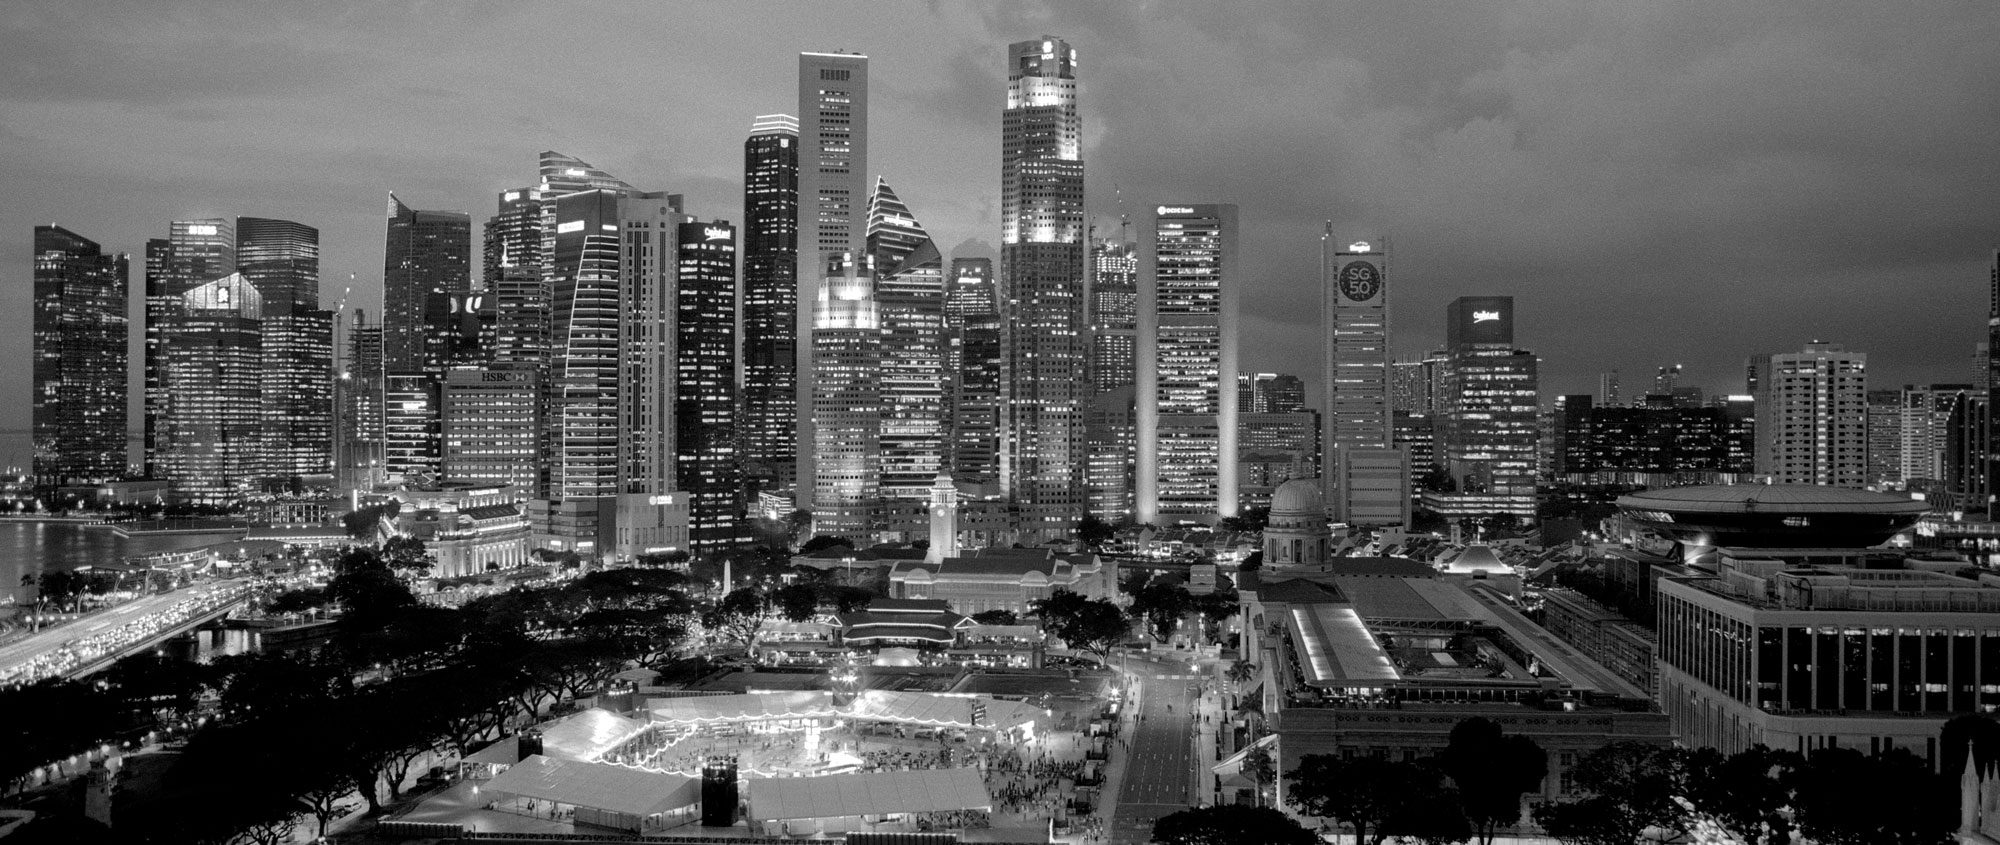 @n88djw · Sep 29 SINGAPORE: The Silver Hour In colour it's the blue hour, in monochrome surely it's the silver hour? Olympus OM-2n | Zuiko 2/28 | Ilford Delta 100 | Ilford DD-X @ILFORDPhoto #ilfordphoto #fridayfavourites #ddxdev